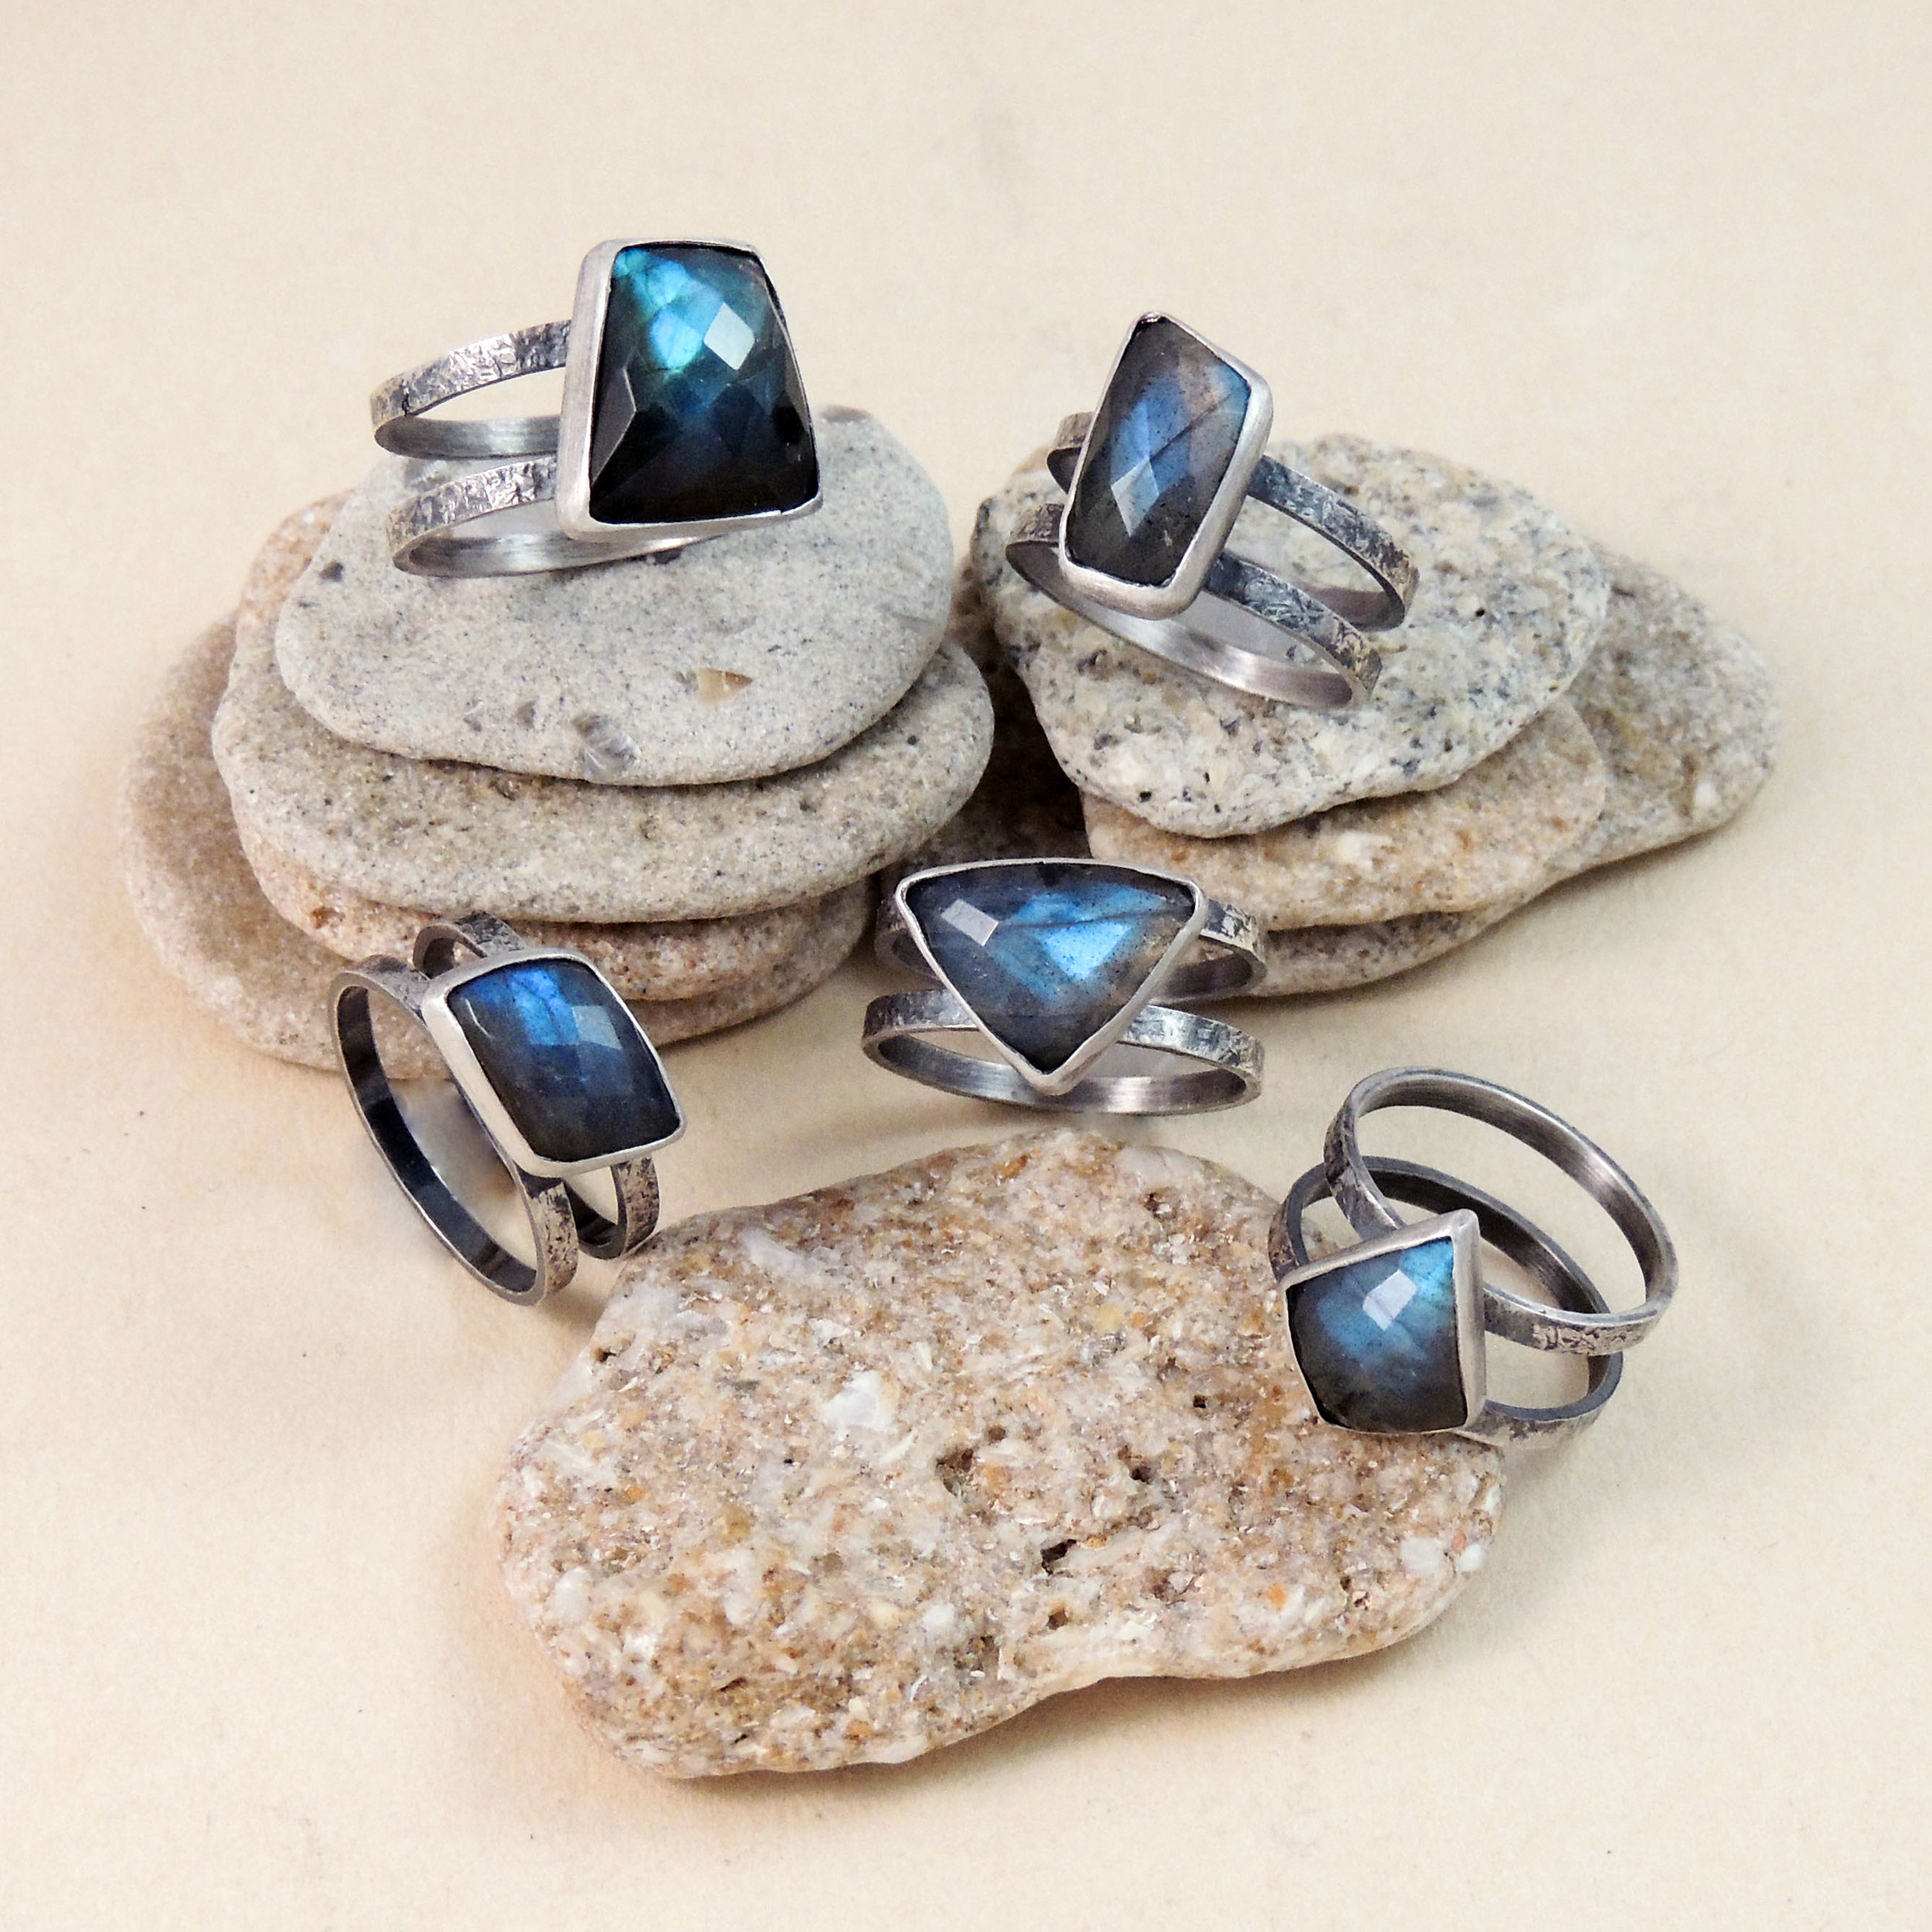 cosmic labradorite rings group.jpg